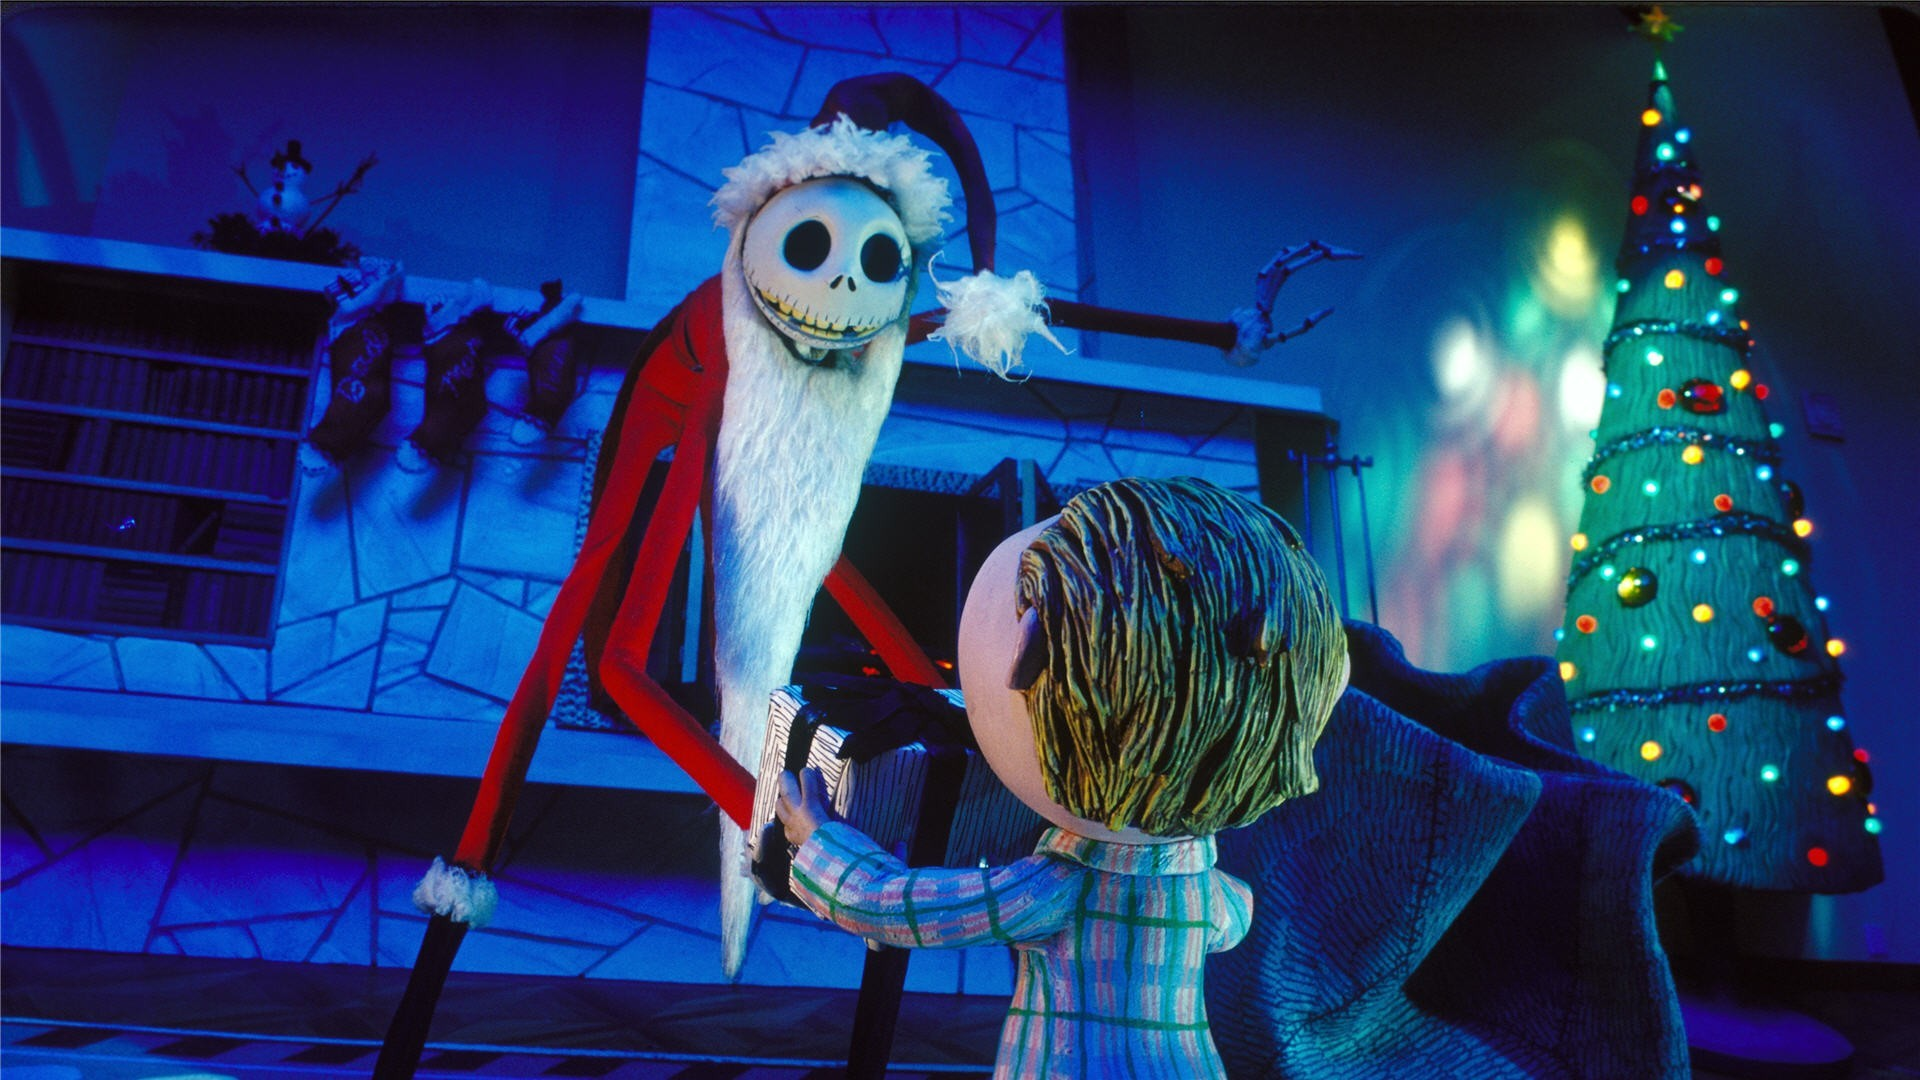 The Nightmare Before Christmas Backgrounds 61 Pictures